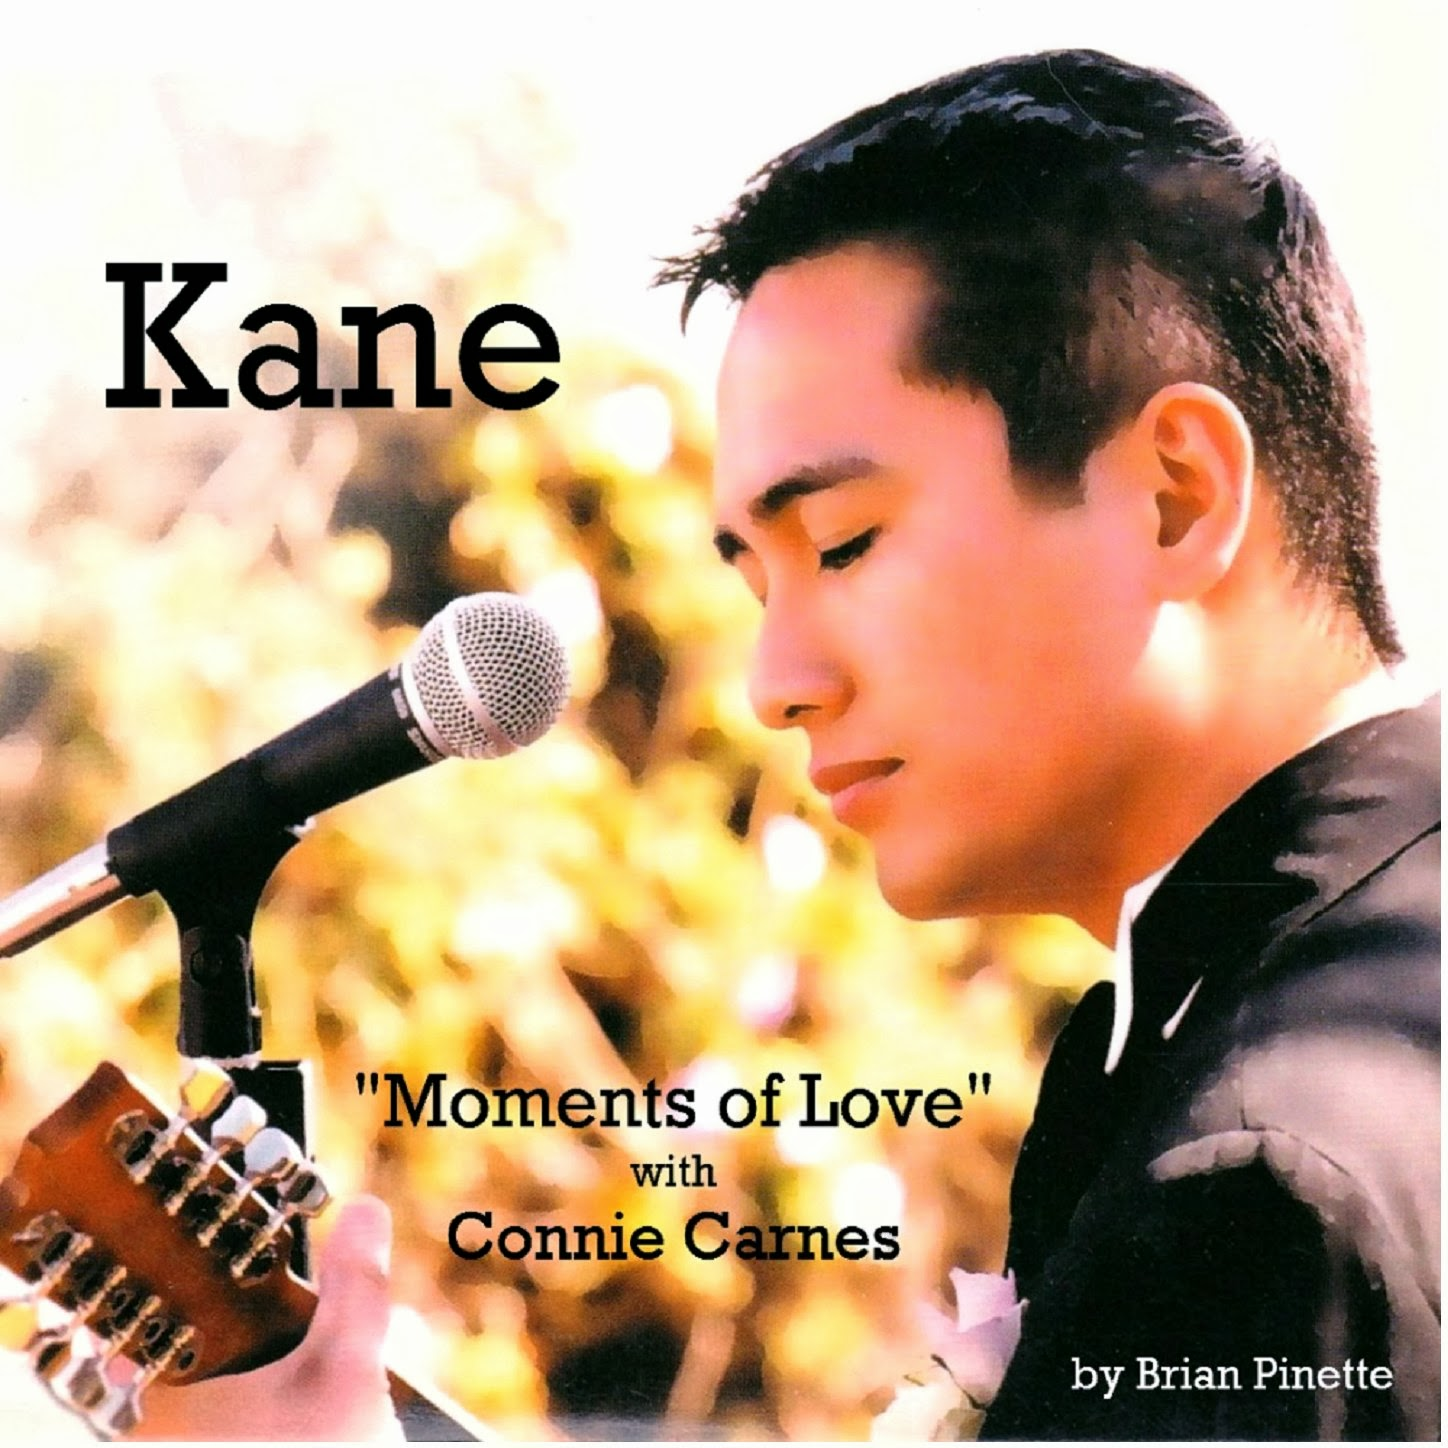 Moments of Love (Live) Kane & Connie Carnes